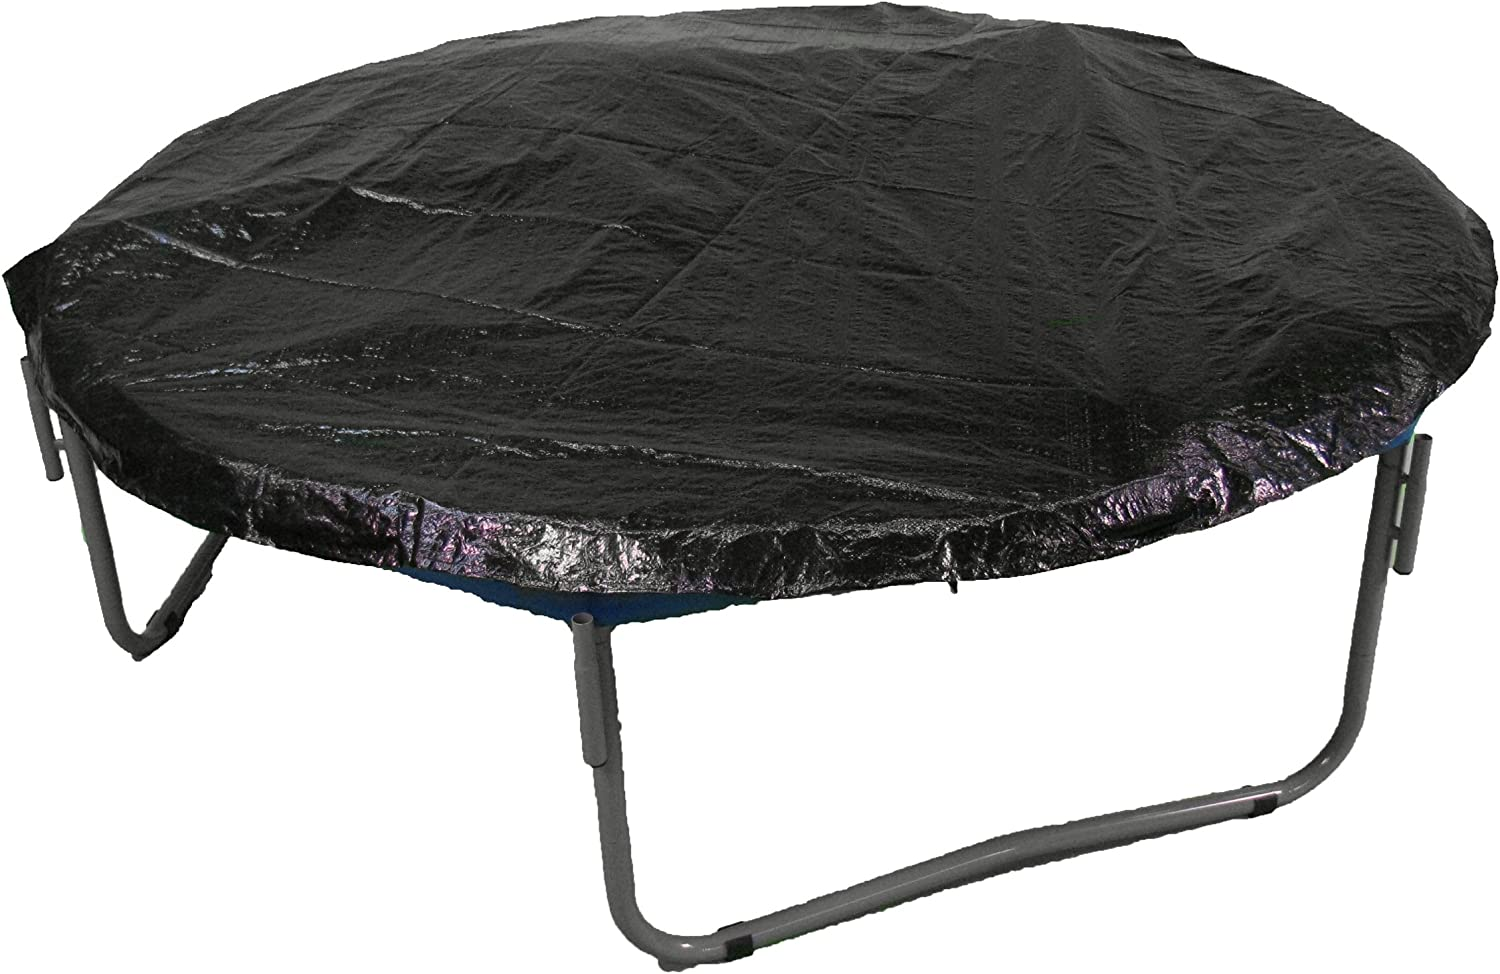 Upper Bounce UBWC-7.5 Trampoline Protection Weather and Rain Cover Fits for Round Trampoline Frames